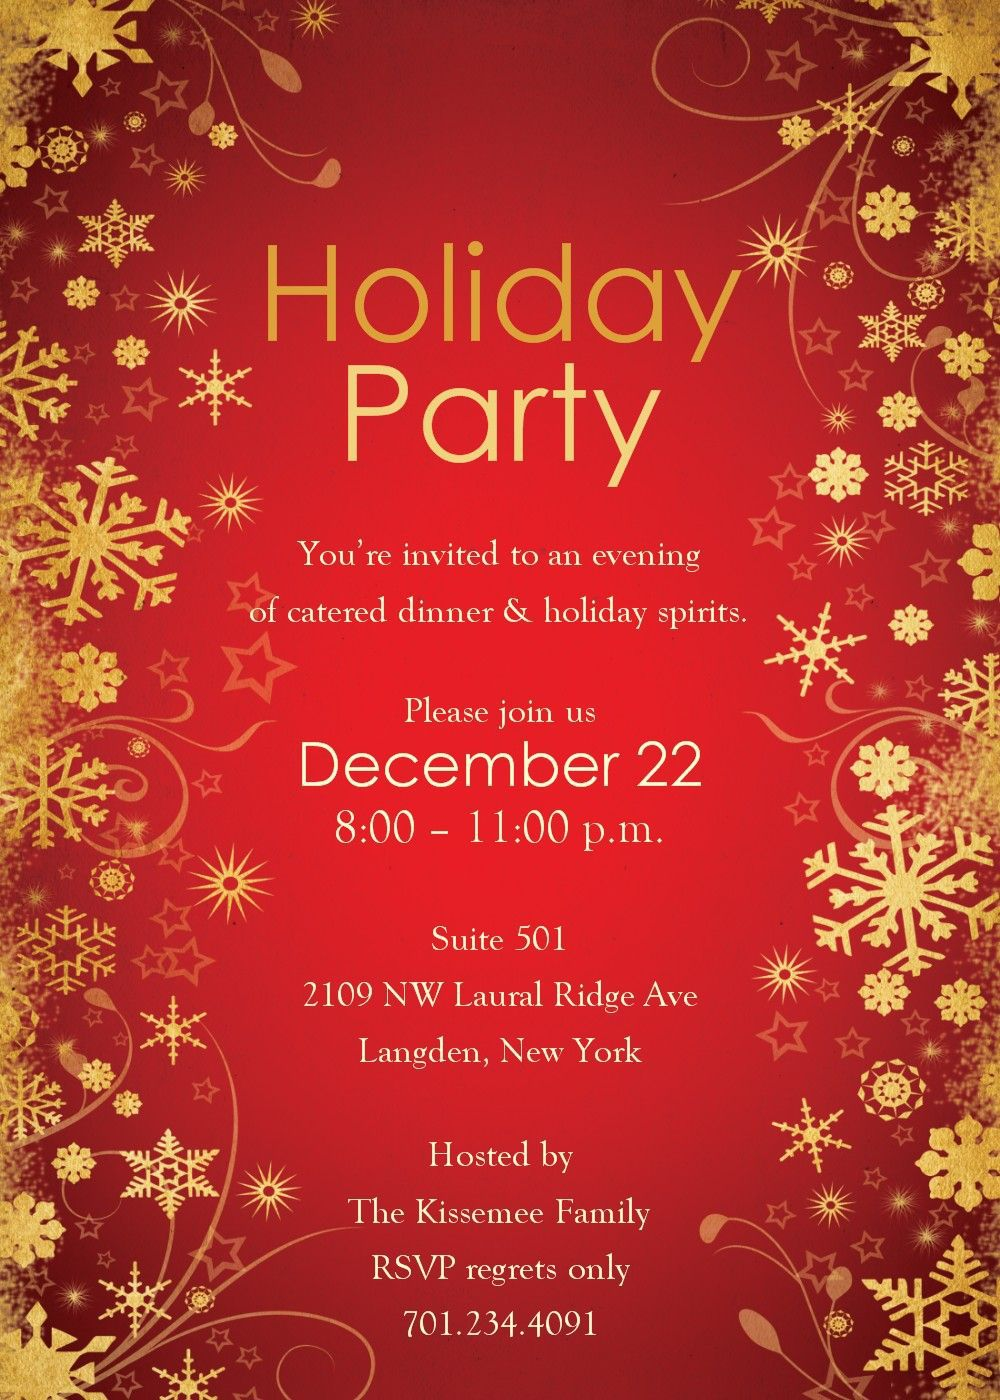 005 Impressive Free Holiday Invite Template Picture  Templates Party Ticket For EmailFull